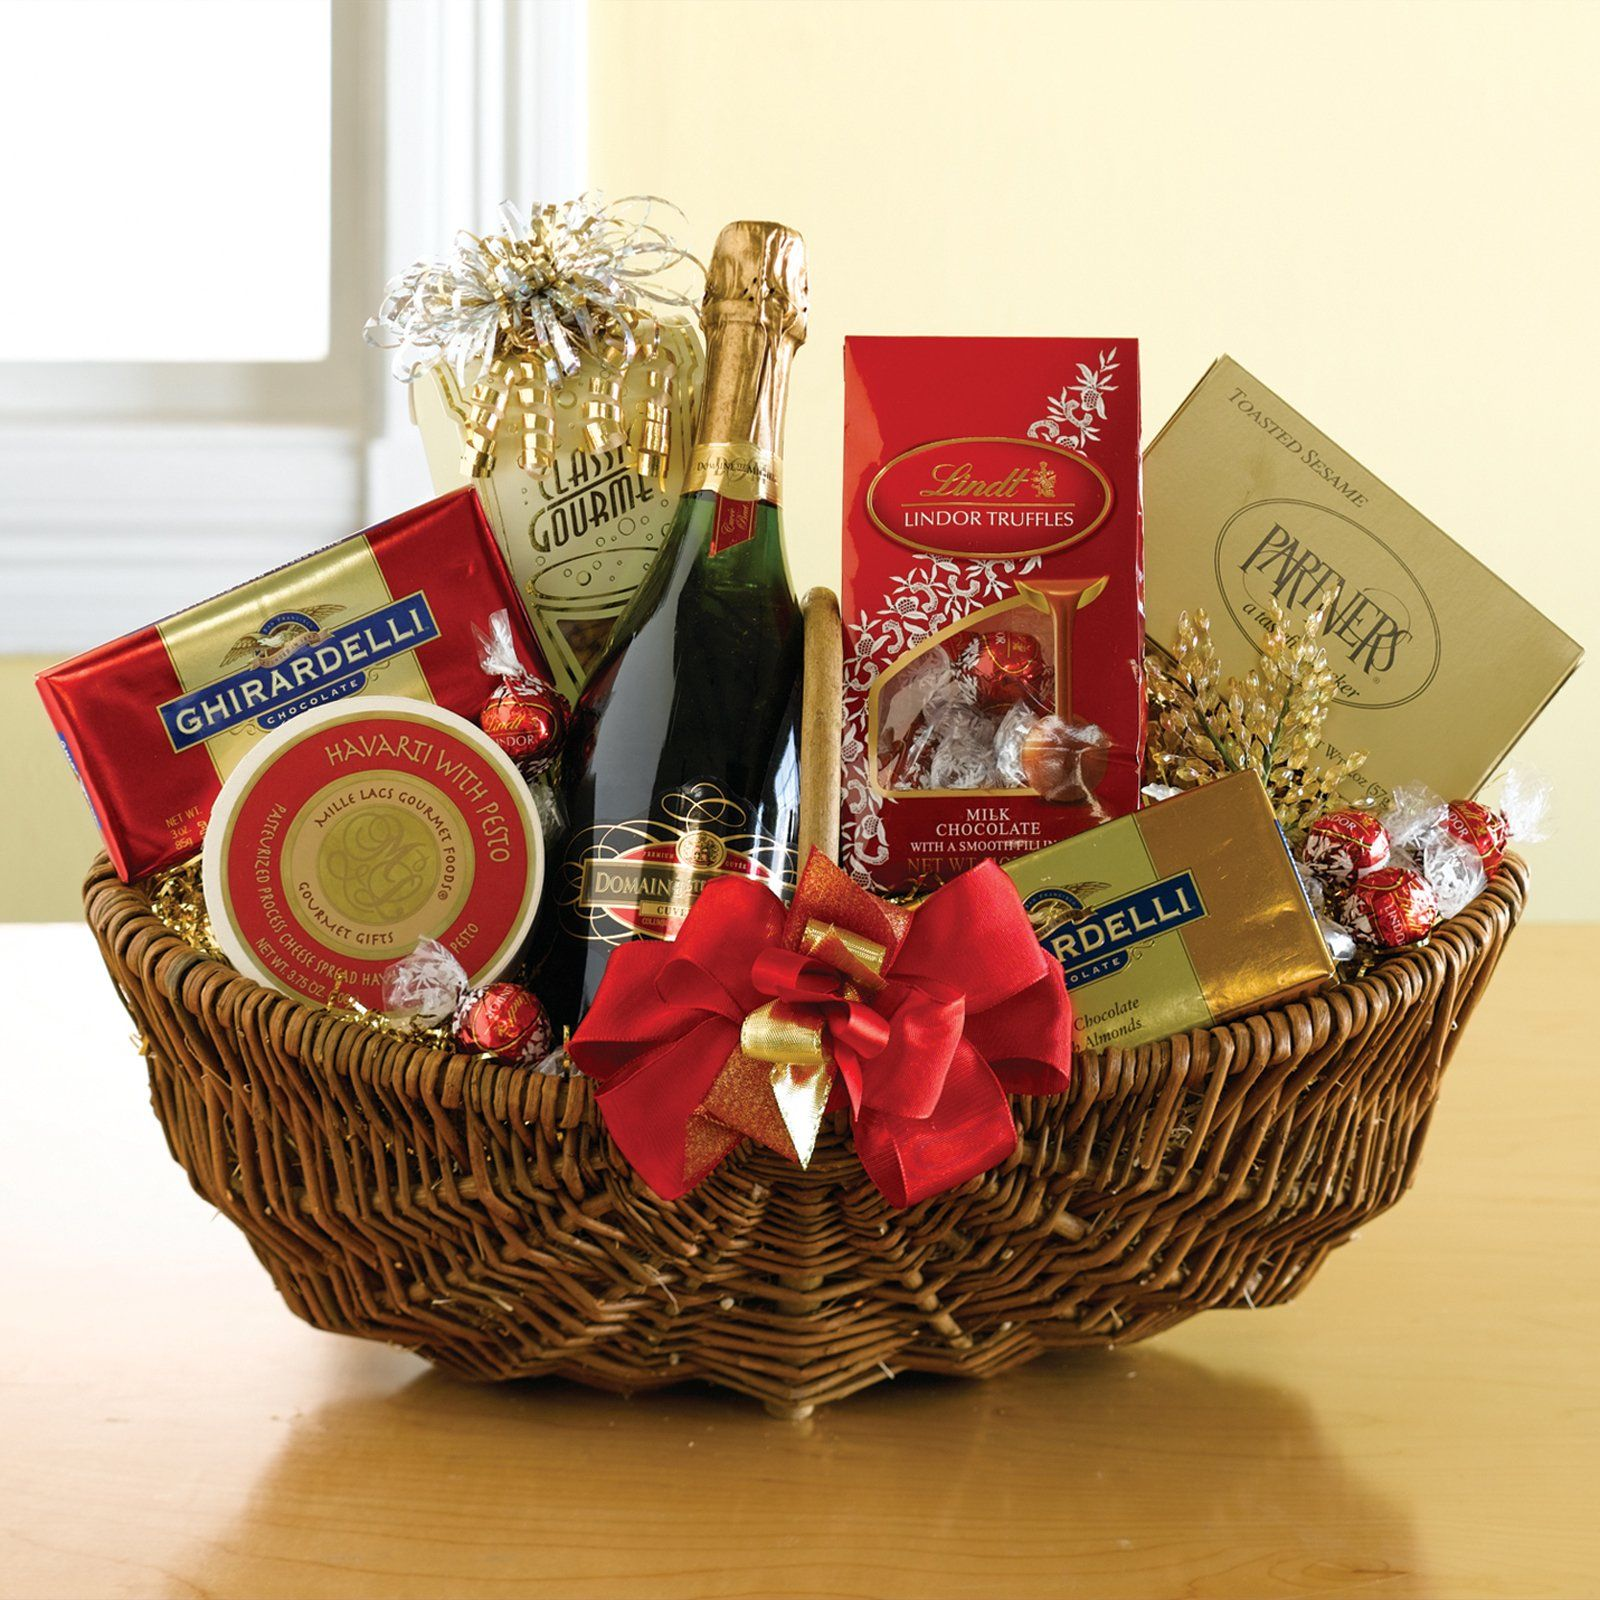 How To Make A Gift Basket Best Ideas In 2020 Christmas Gift Hampers Making A Gift Basket Holiday Gift Baskets